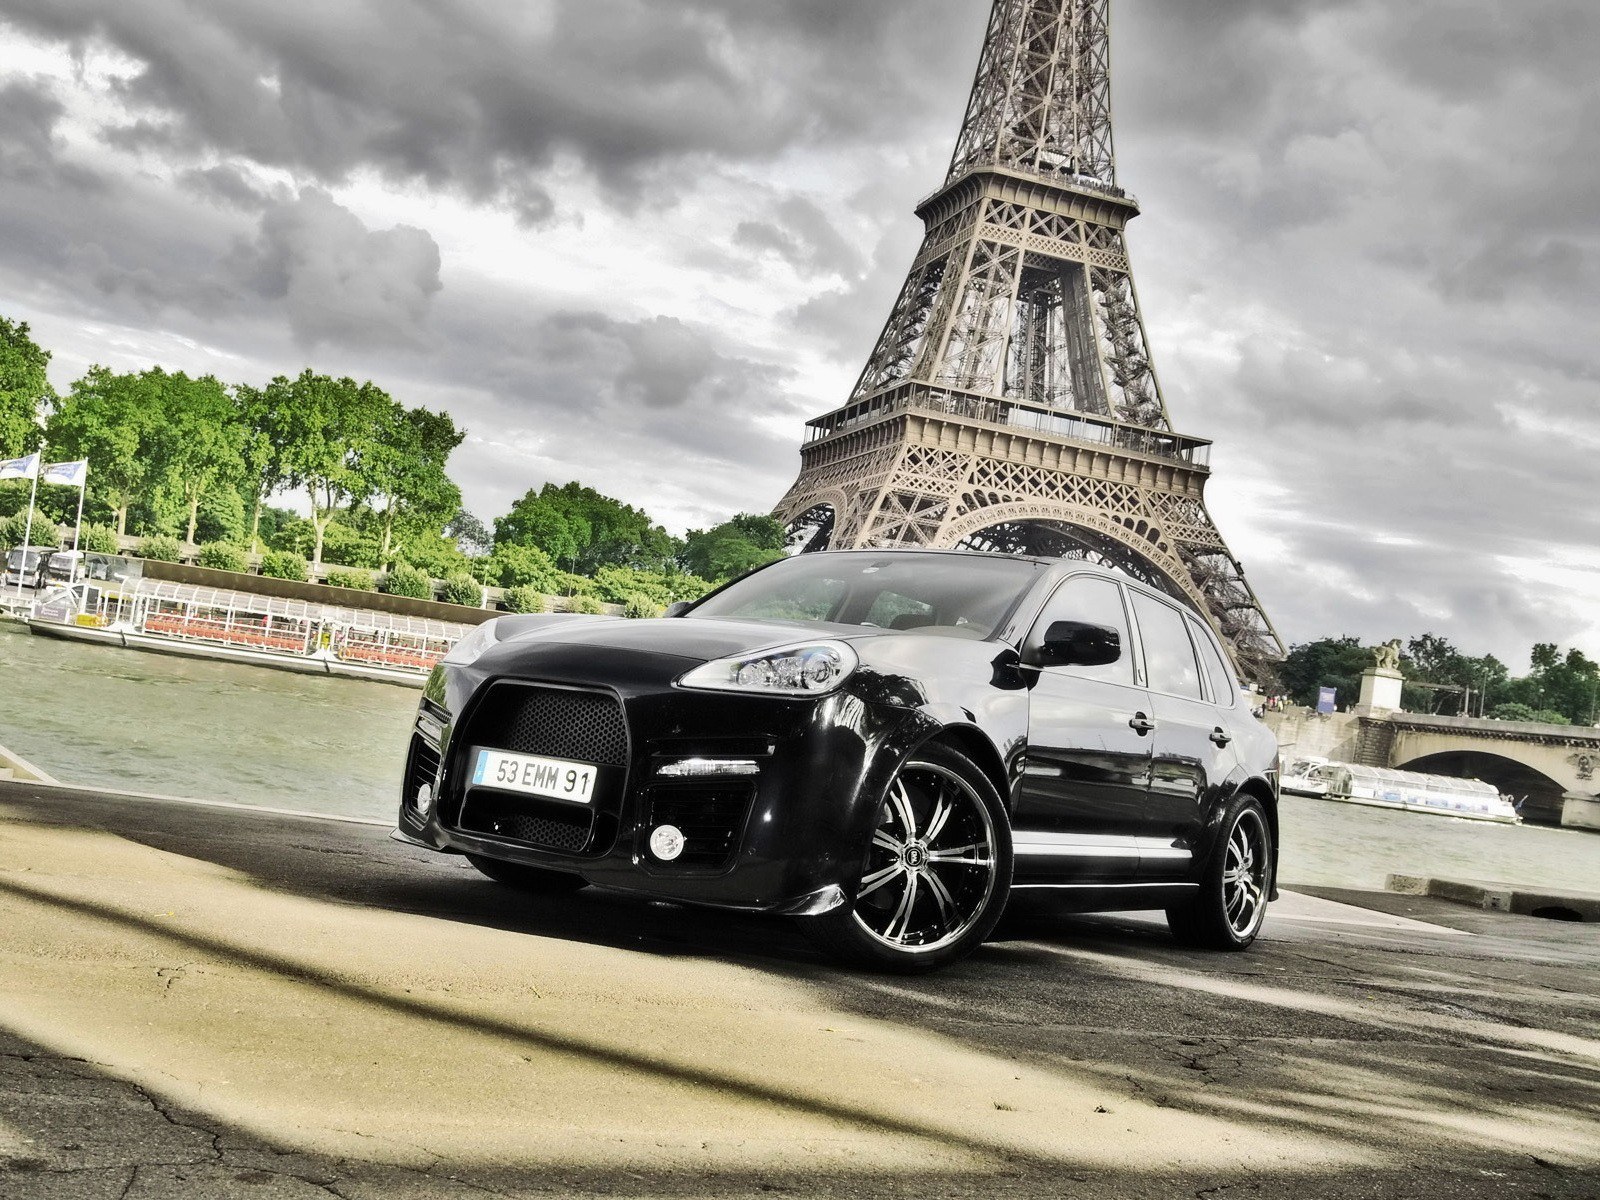 Eiffel Tower Paris cars HD Wallpaper